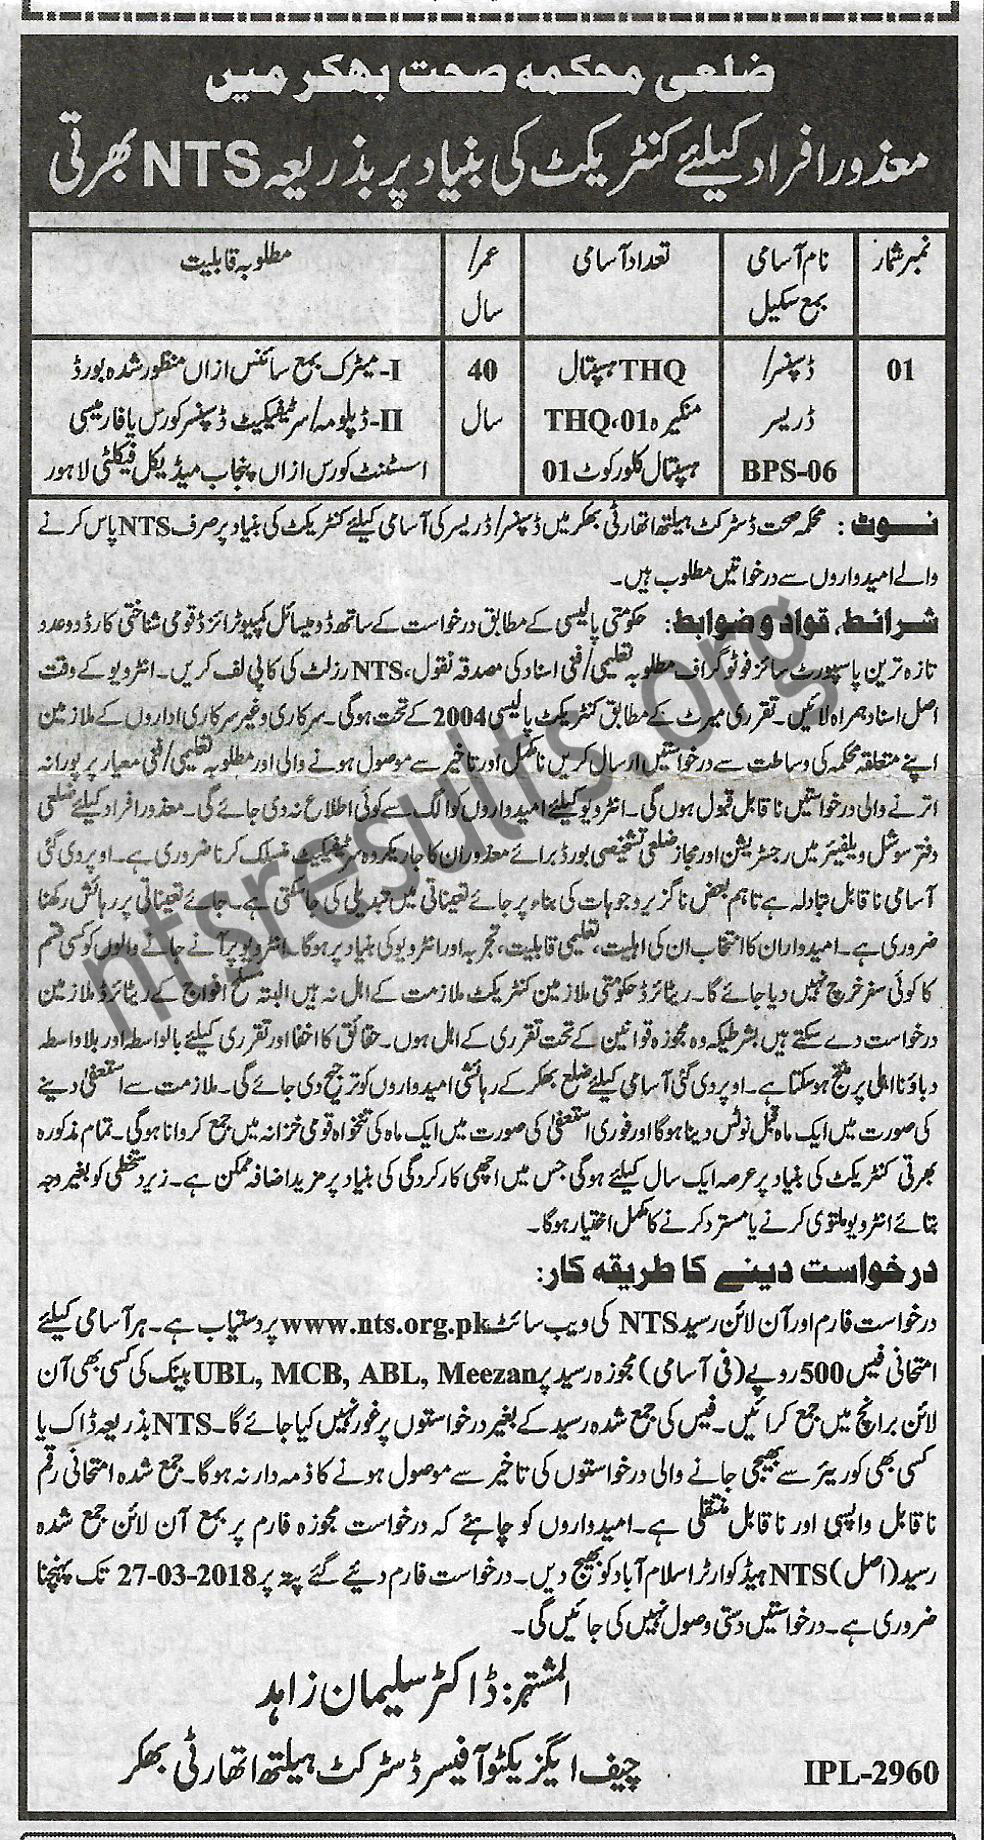 District Health Authority DHA Bhakkar Dresser Dispenser Jobs Via NTS